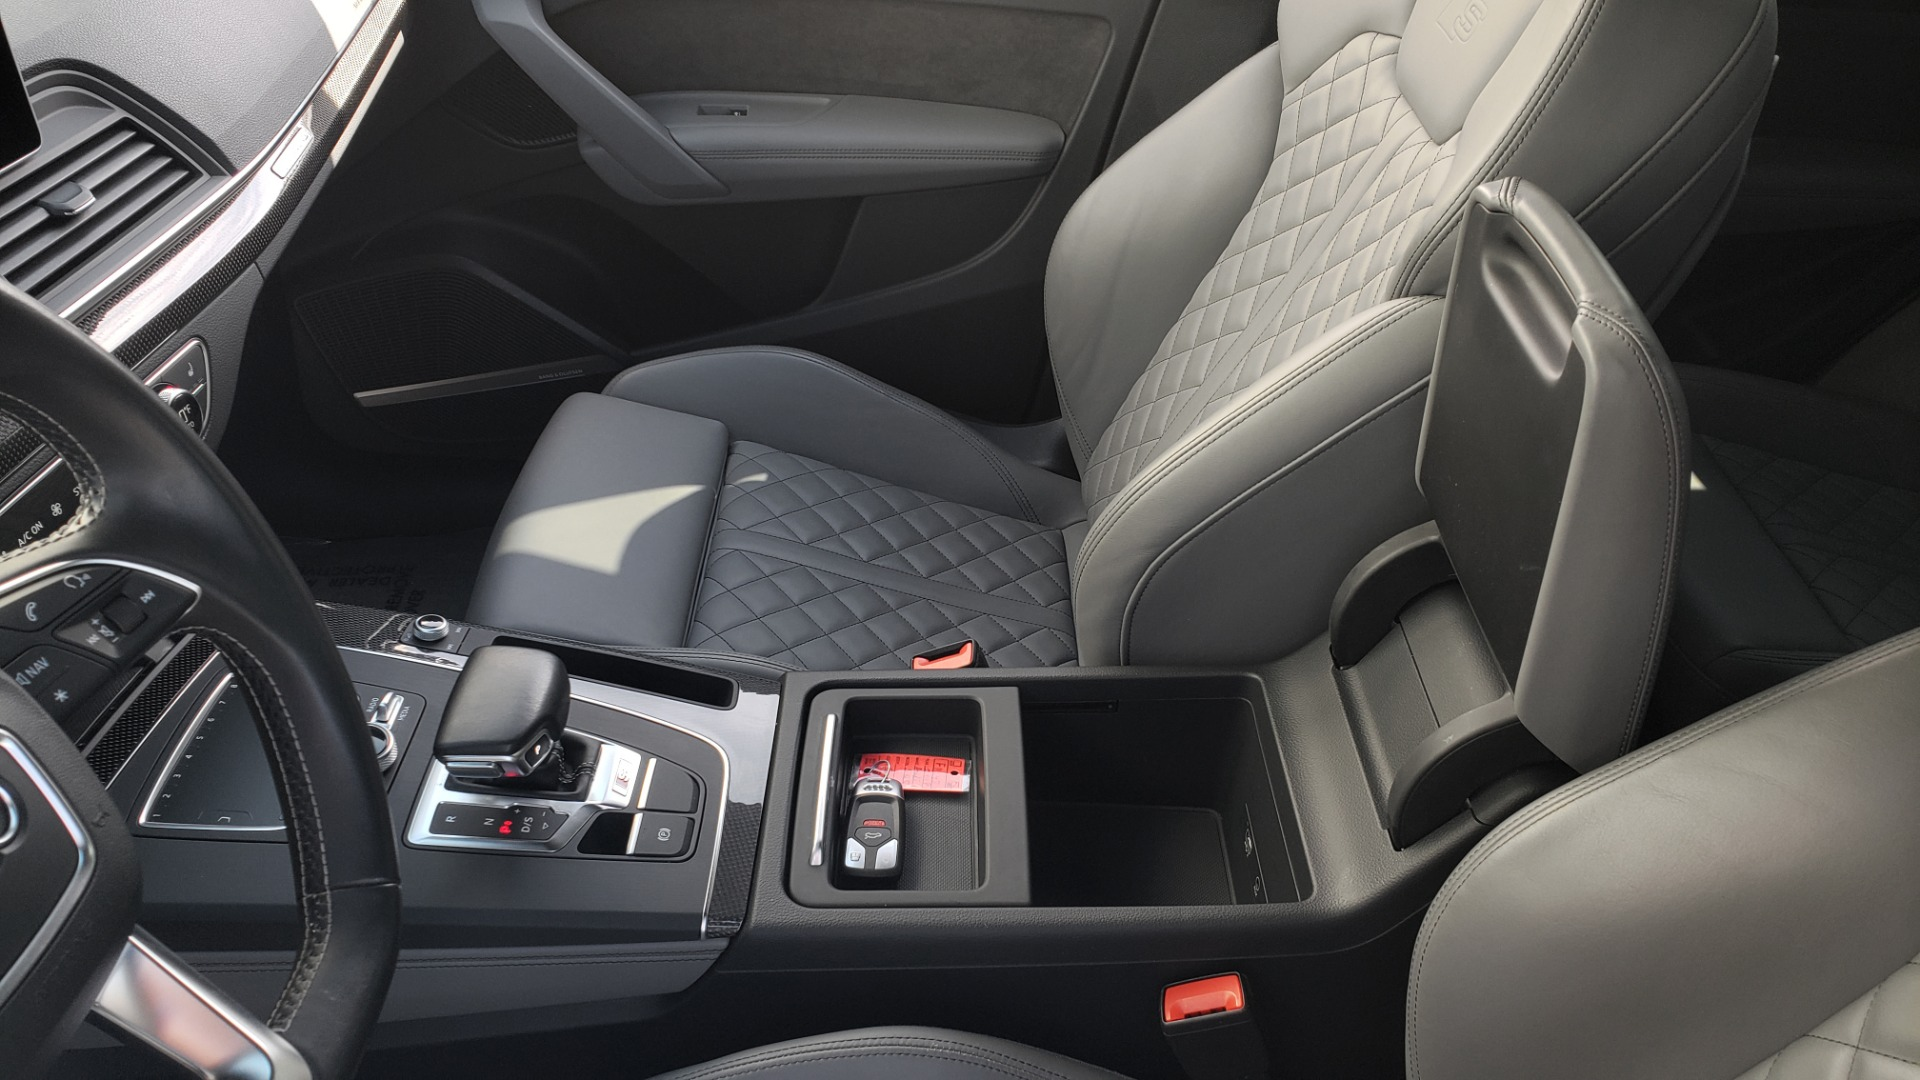 Used 2018 Audi SQ5 PREMIUM PLUS SPORT / NAV / B&O SND / SUNROOF / REARVIEW for sale Sold at Formula Imports in Charlotte NC 28227 51